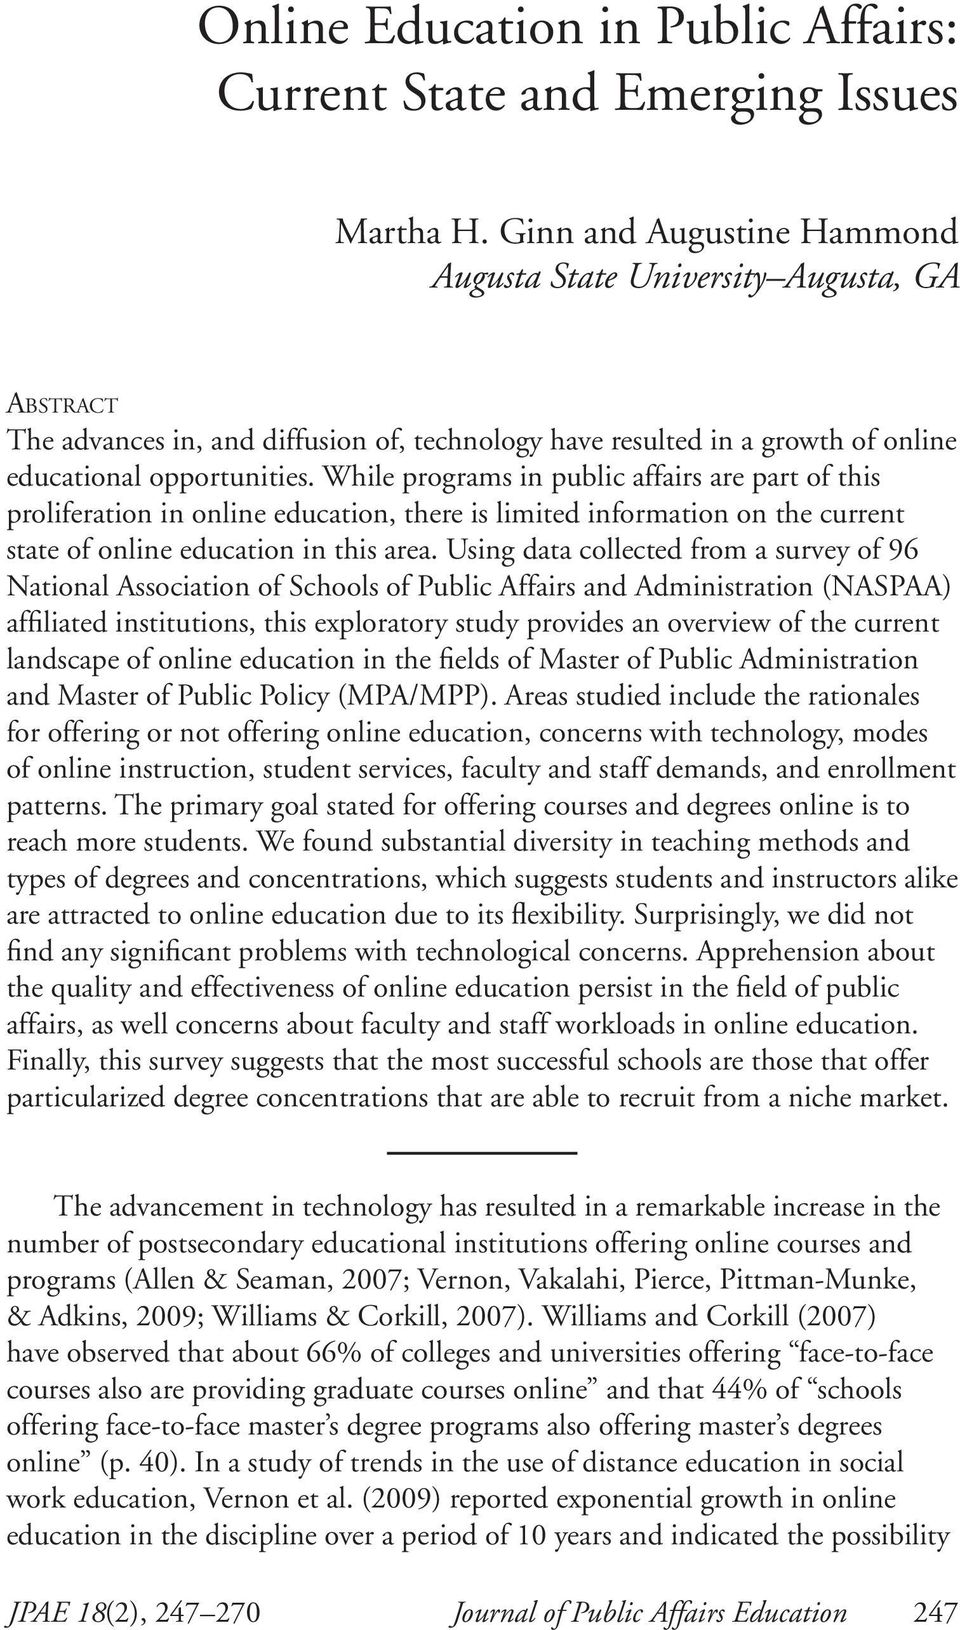 While programs in public affairs are part of this proliferation in online education, there is limited information on the current state of online education in this area.